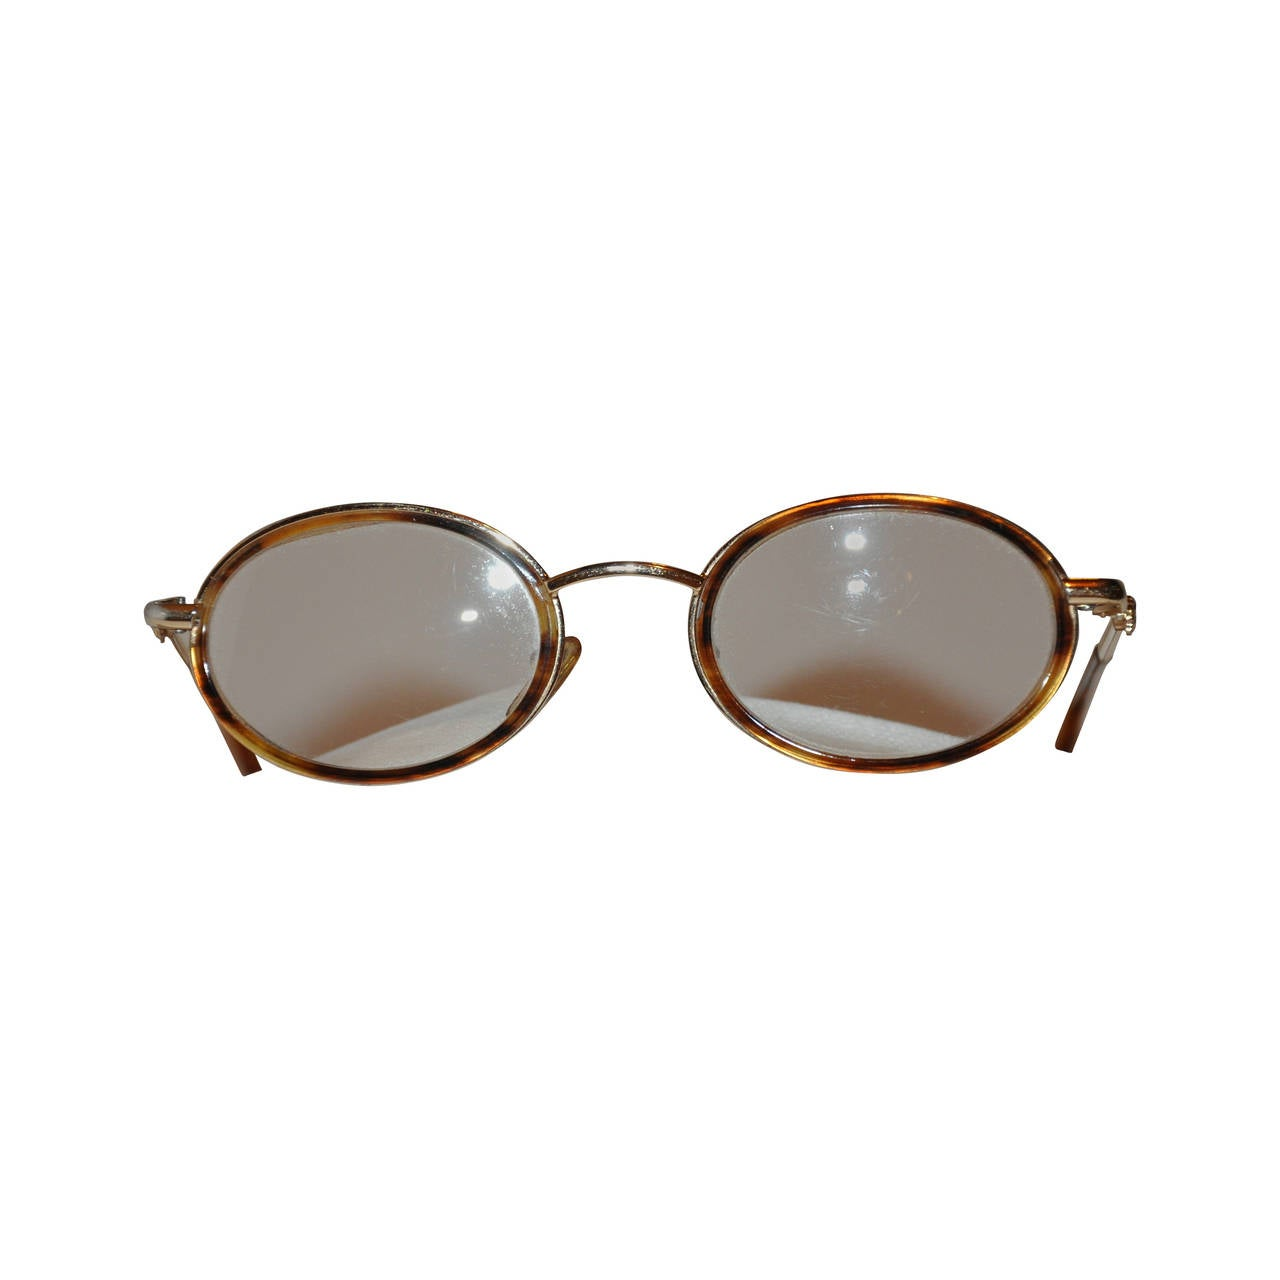 gianni versace gold hardware frame with tortoise shell